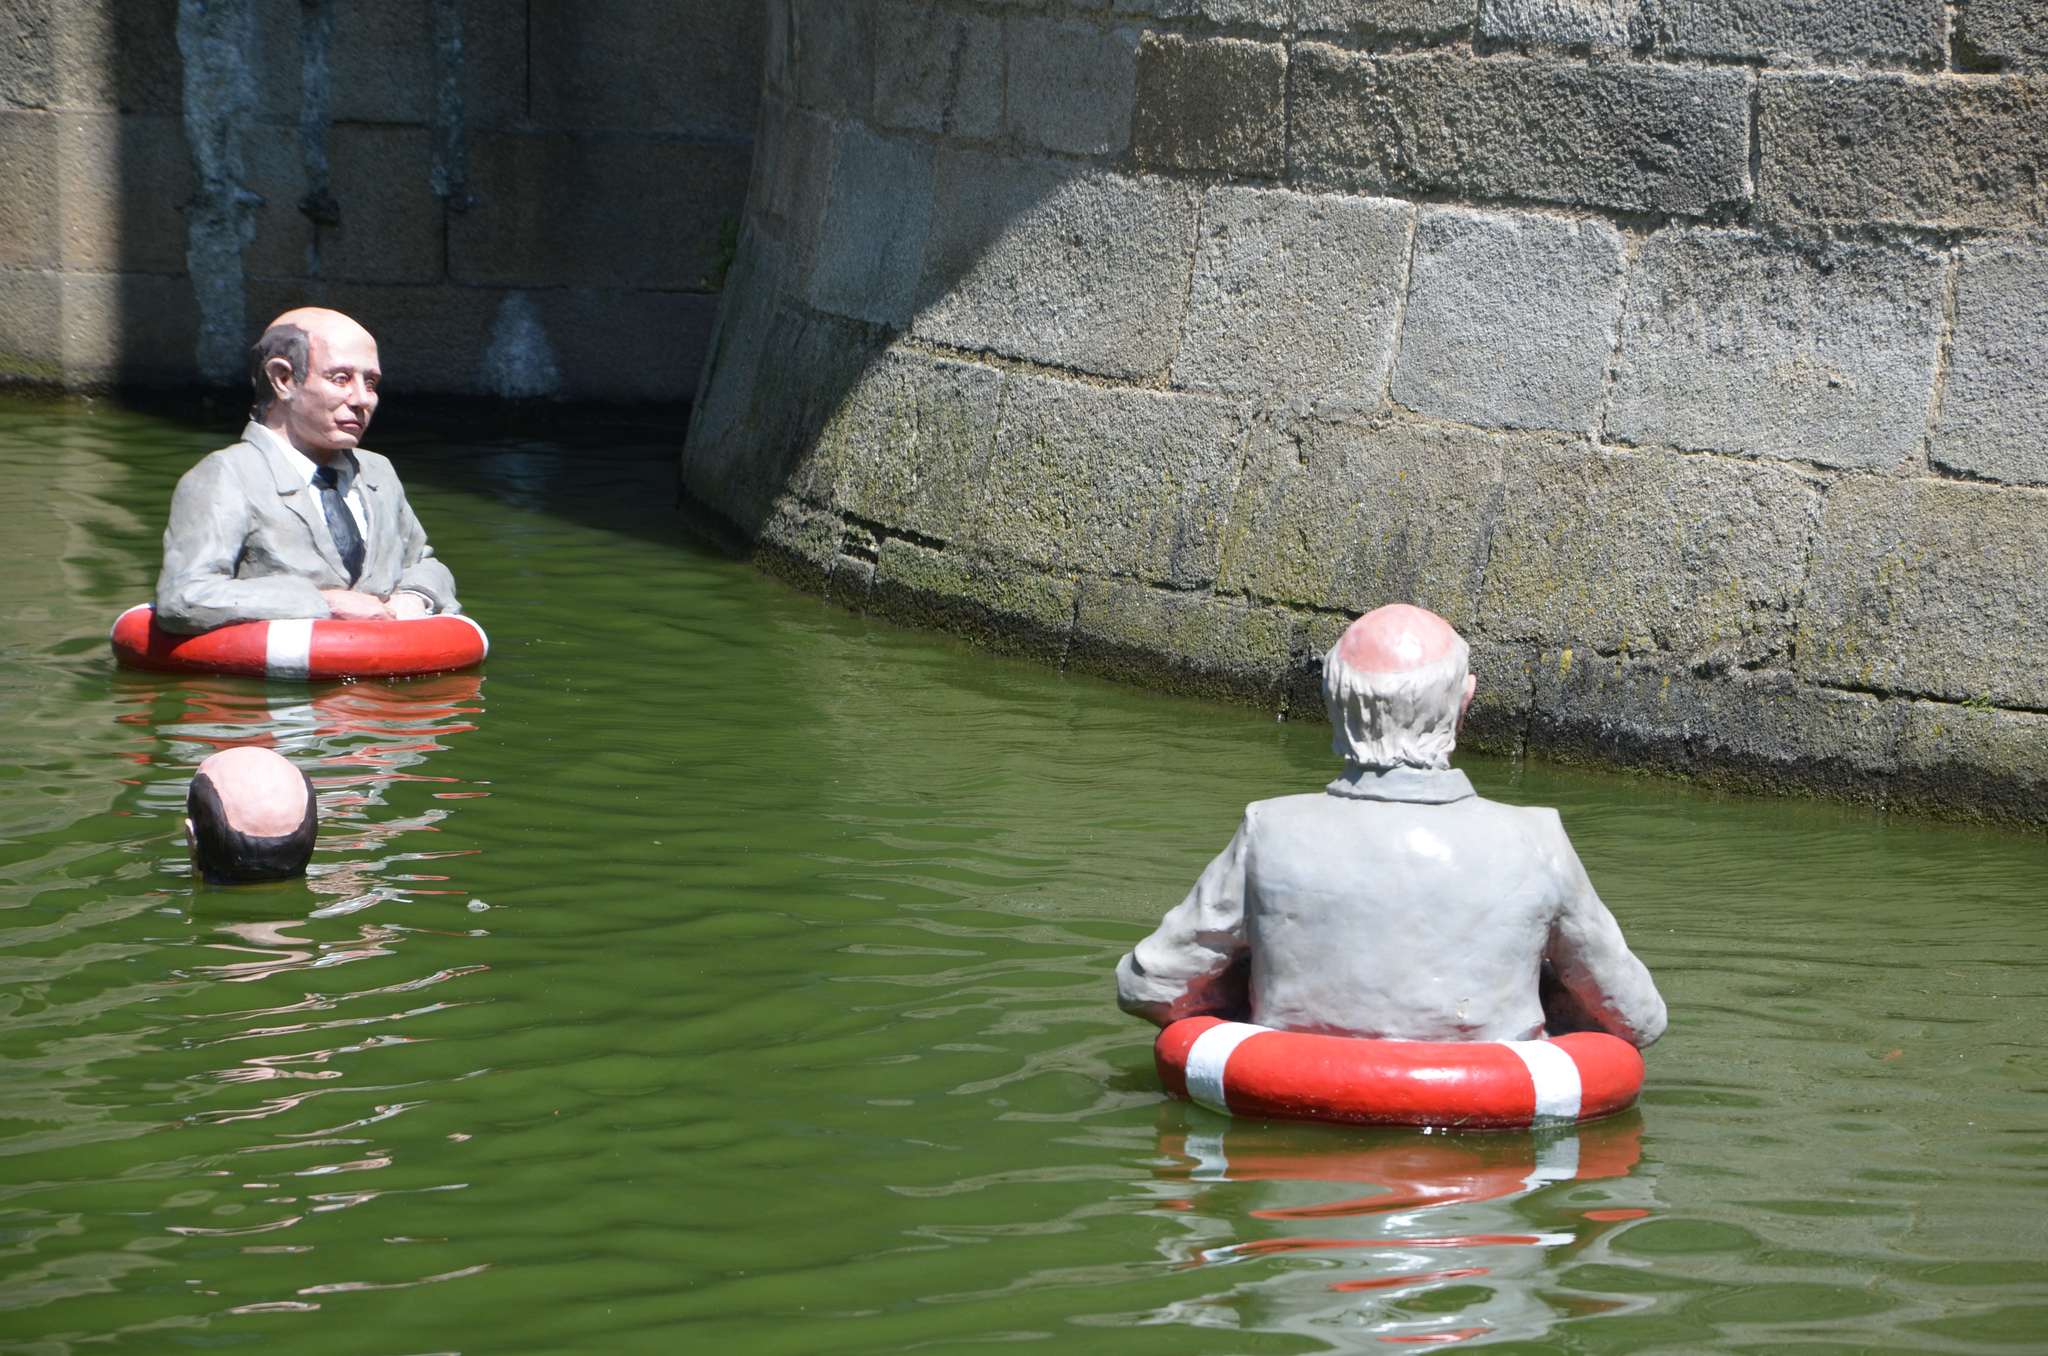 An art exhibit by sculptor Isaac Cordal in Nantes, France, in 2013 shows businessment with floats going about business after global sea levels have risen due to climate change. Credit: objectifnantes/Flickr, CC BY 2.0